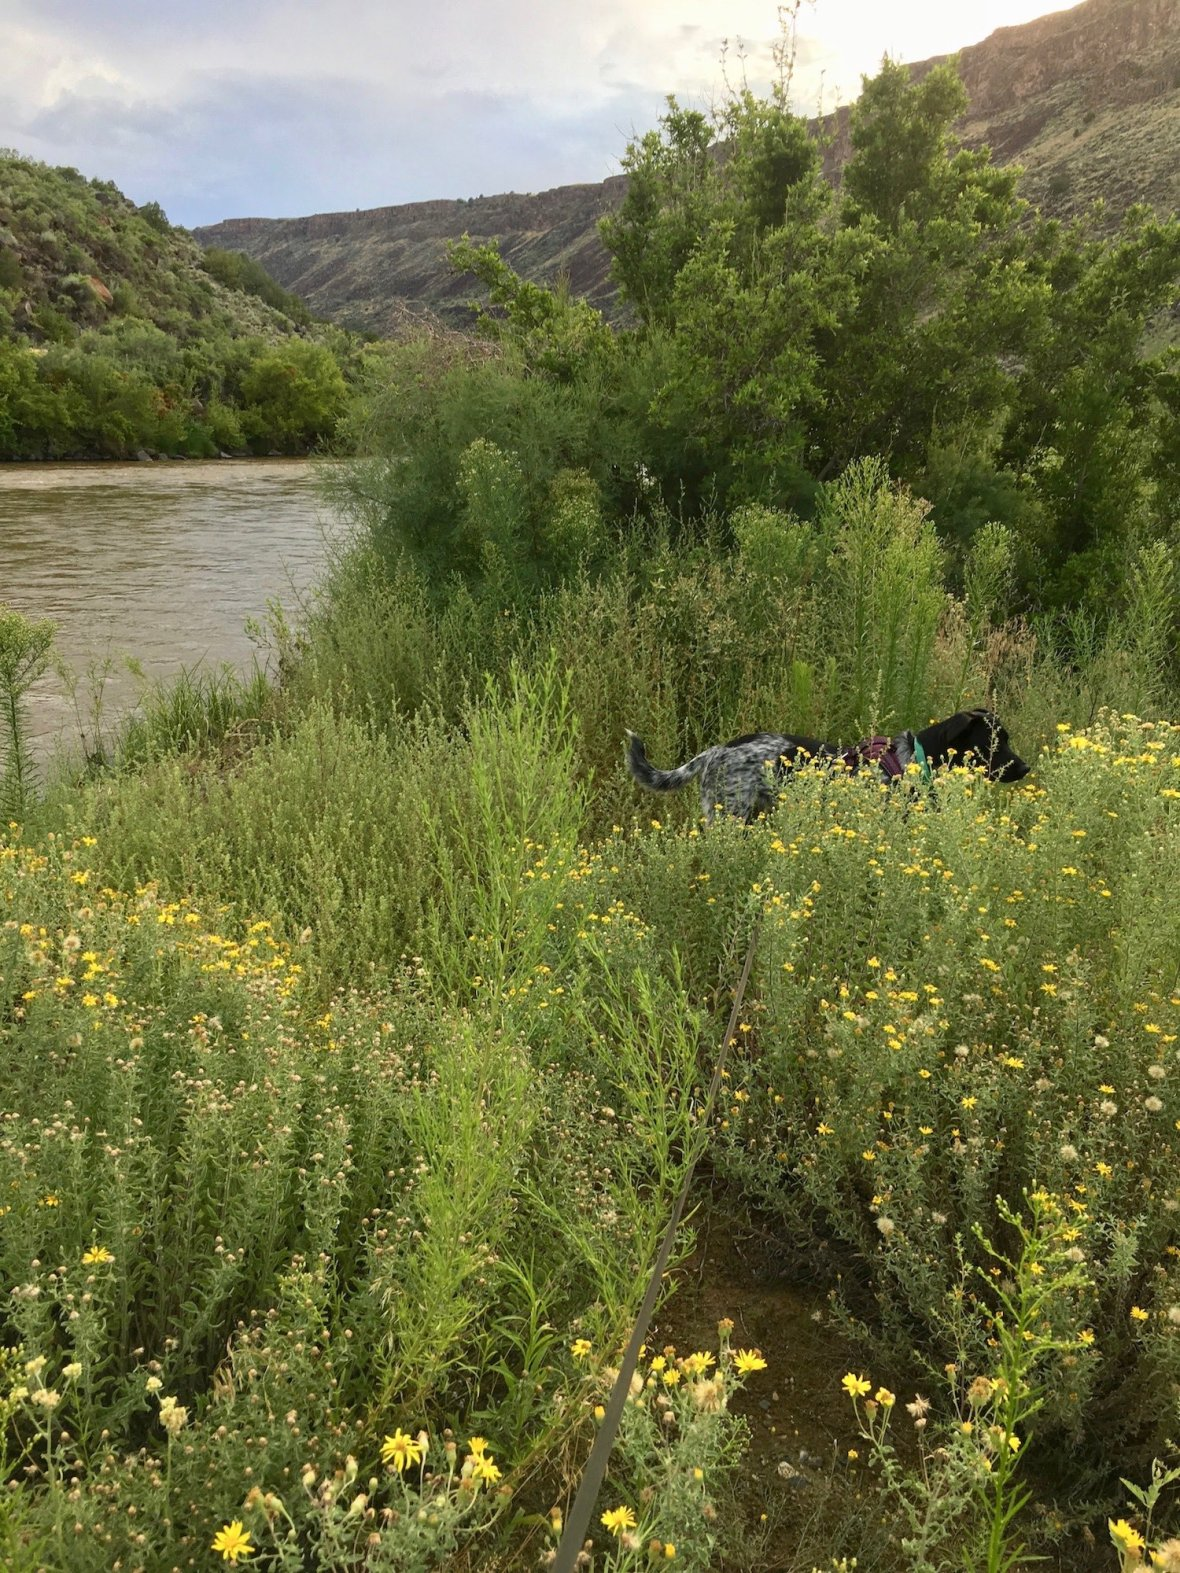 Juniper the Wonder Dog in the August wildflowers alongside the Rio Grande in Orilla Verde Recreation Area